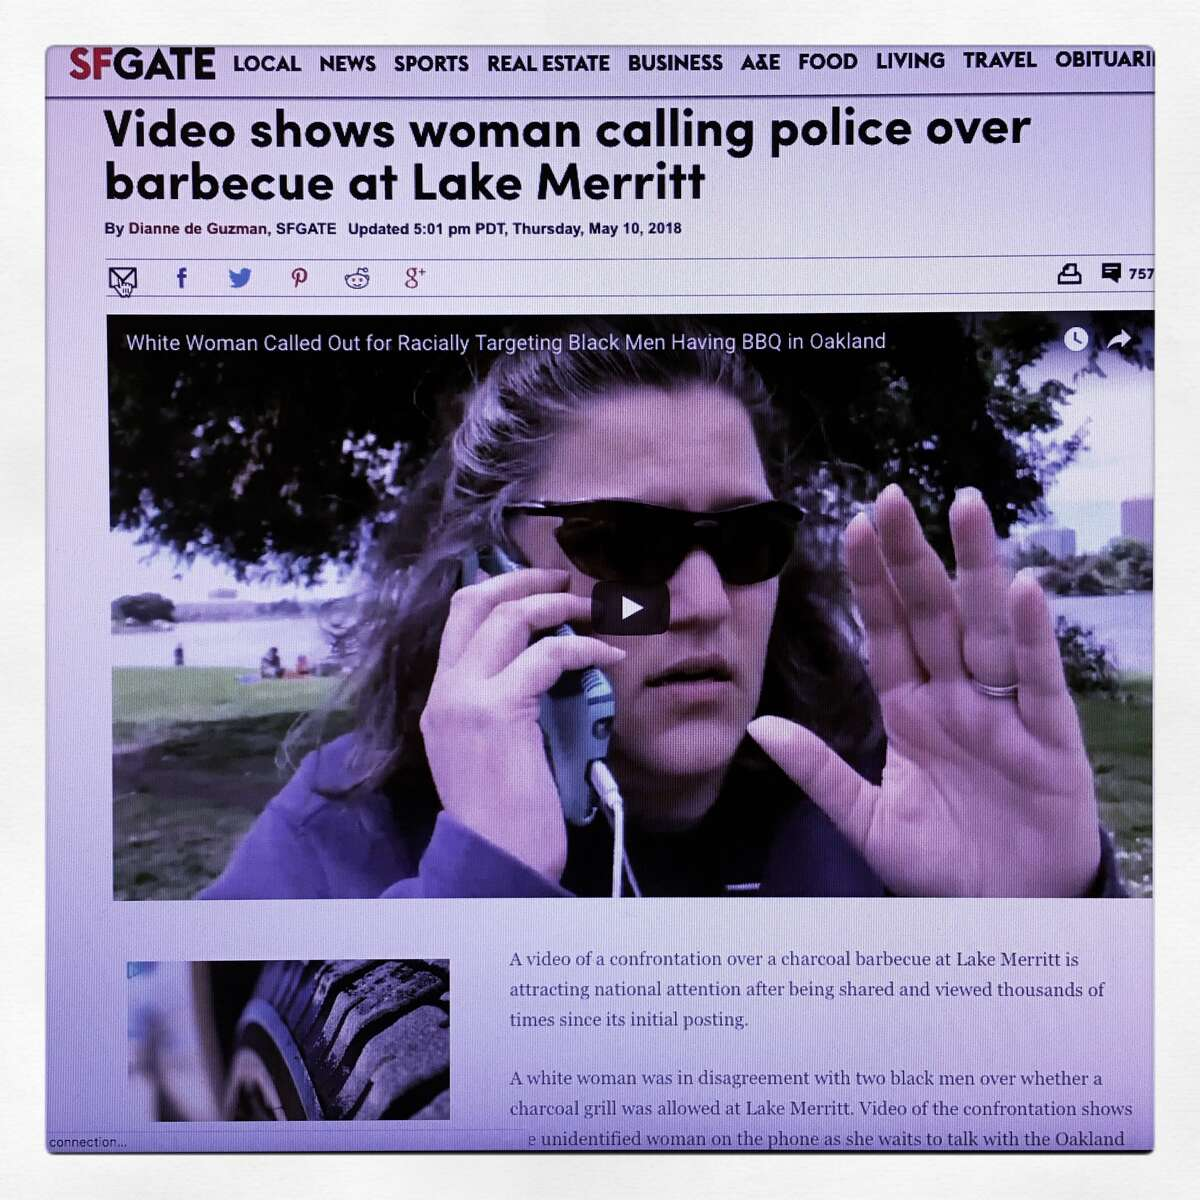 Calling 911 on people of color who are barbecuing, napping, selling lemonade, and otherwise just living their lives There was Barbecue Becky, Permit Patty and many other incidents (that didn't make national headlines) of people calling 911 on people for ordinary, non-criminal activities. The